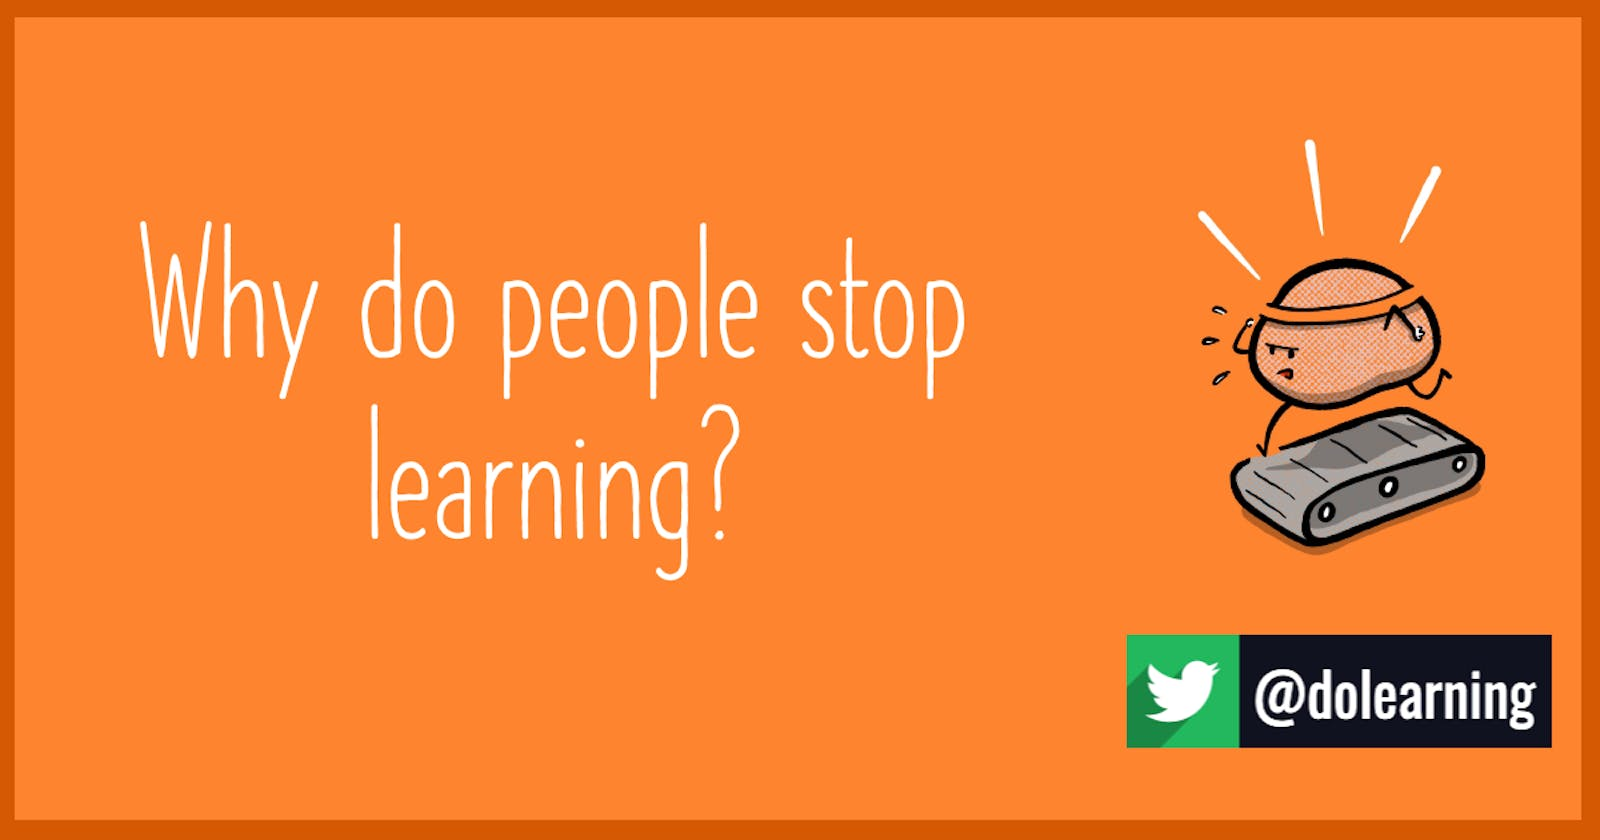 Why do people stop learning?